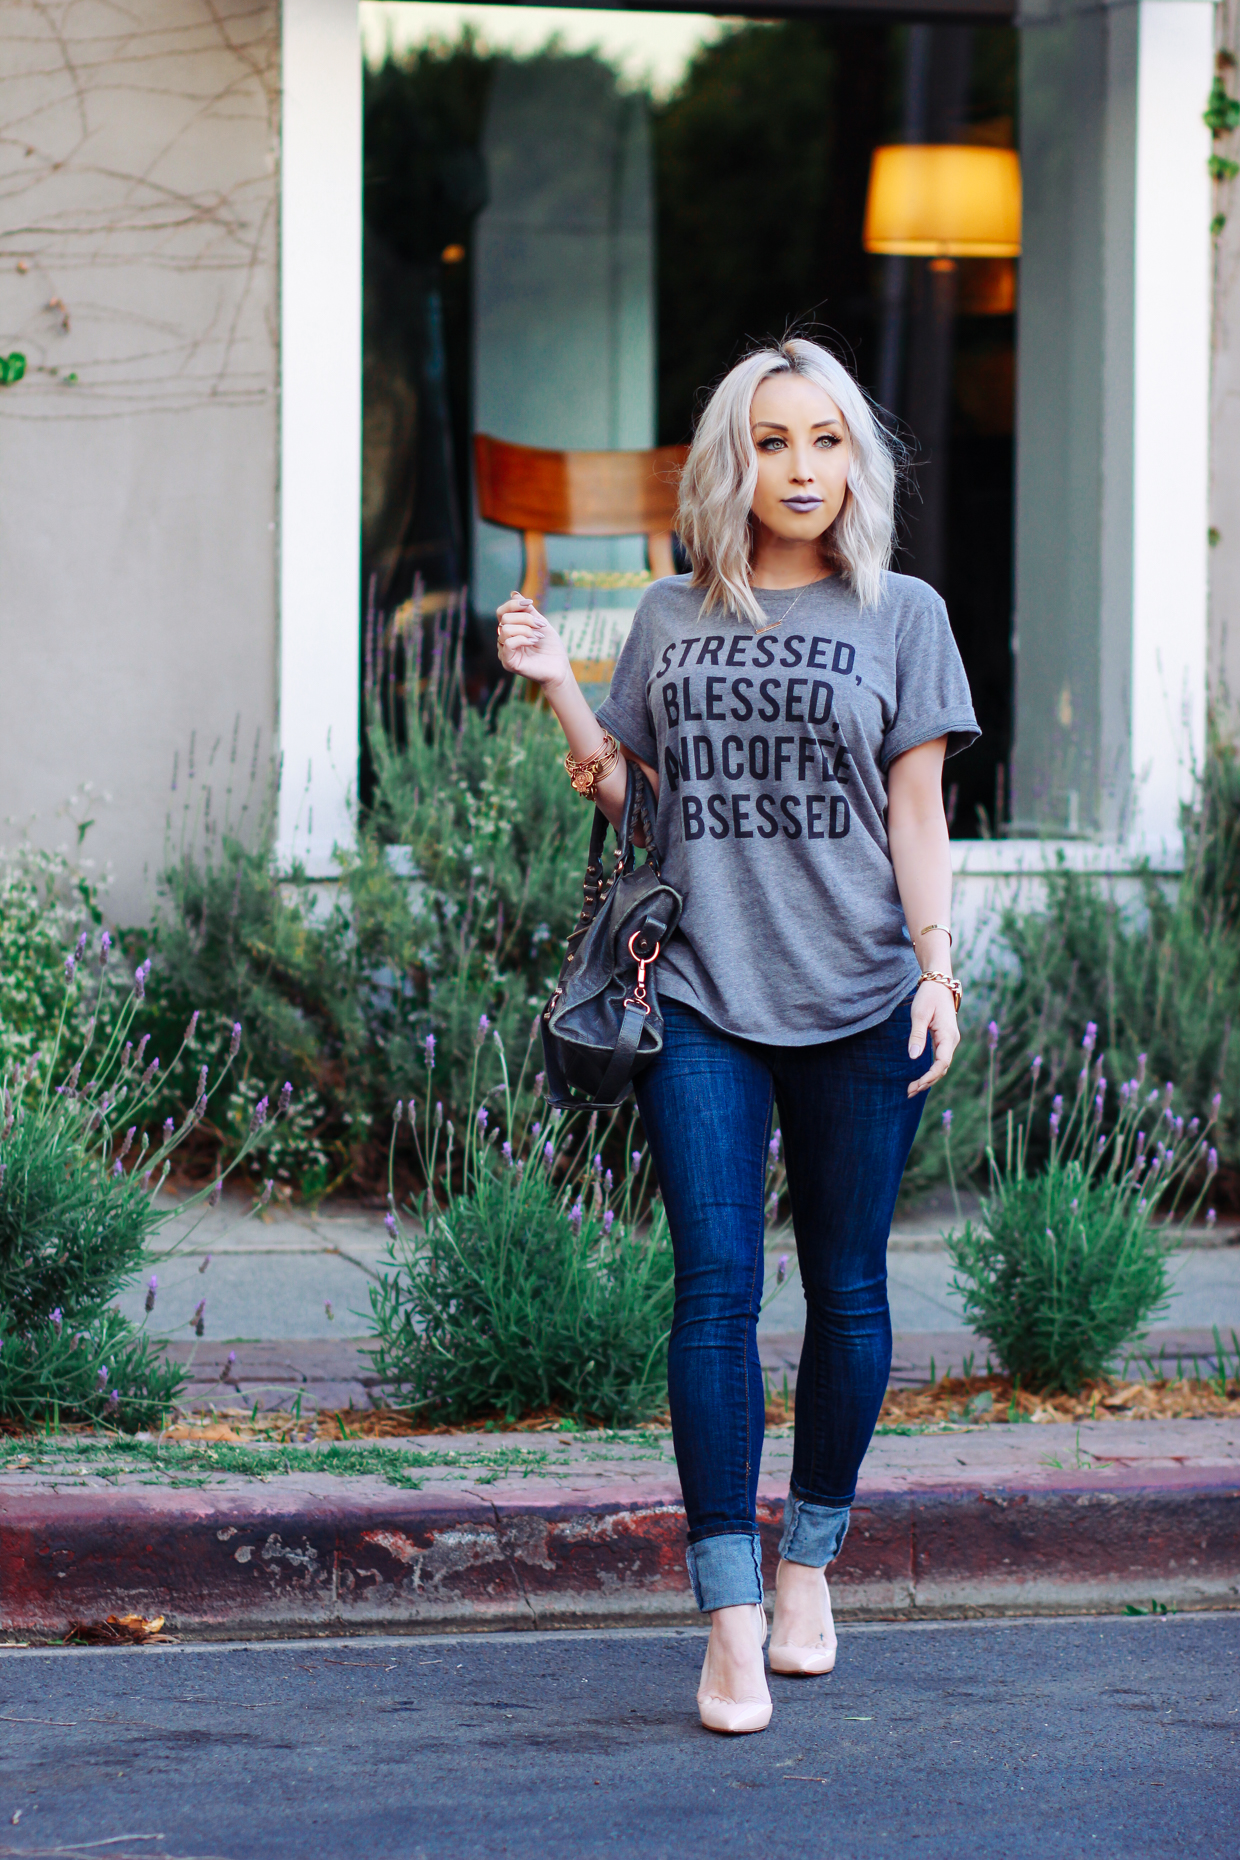 Blondie in the City | Stressed, Blessed, & Coffee Obsessed Shirt